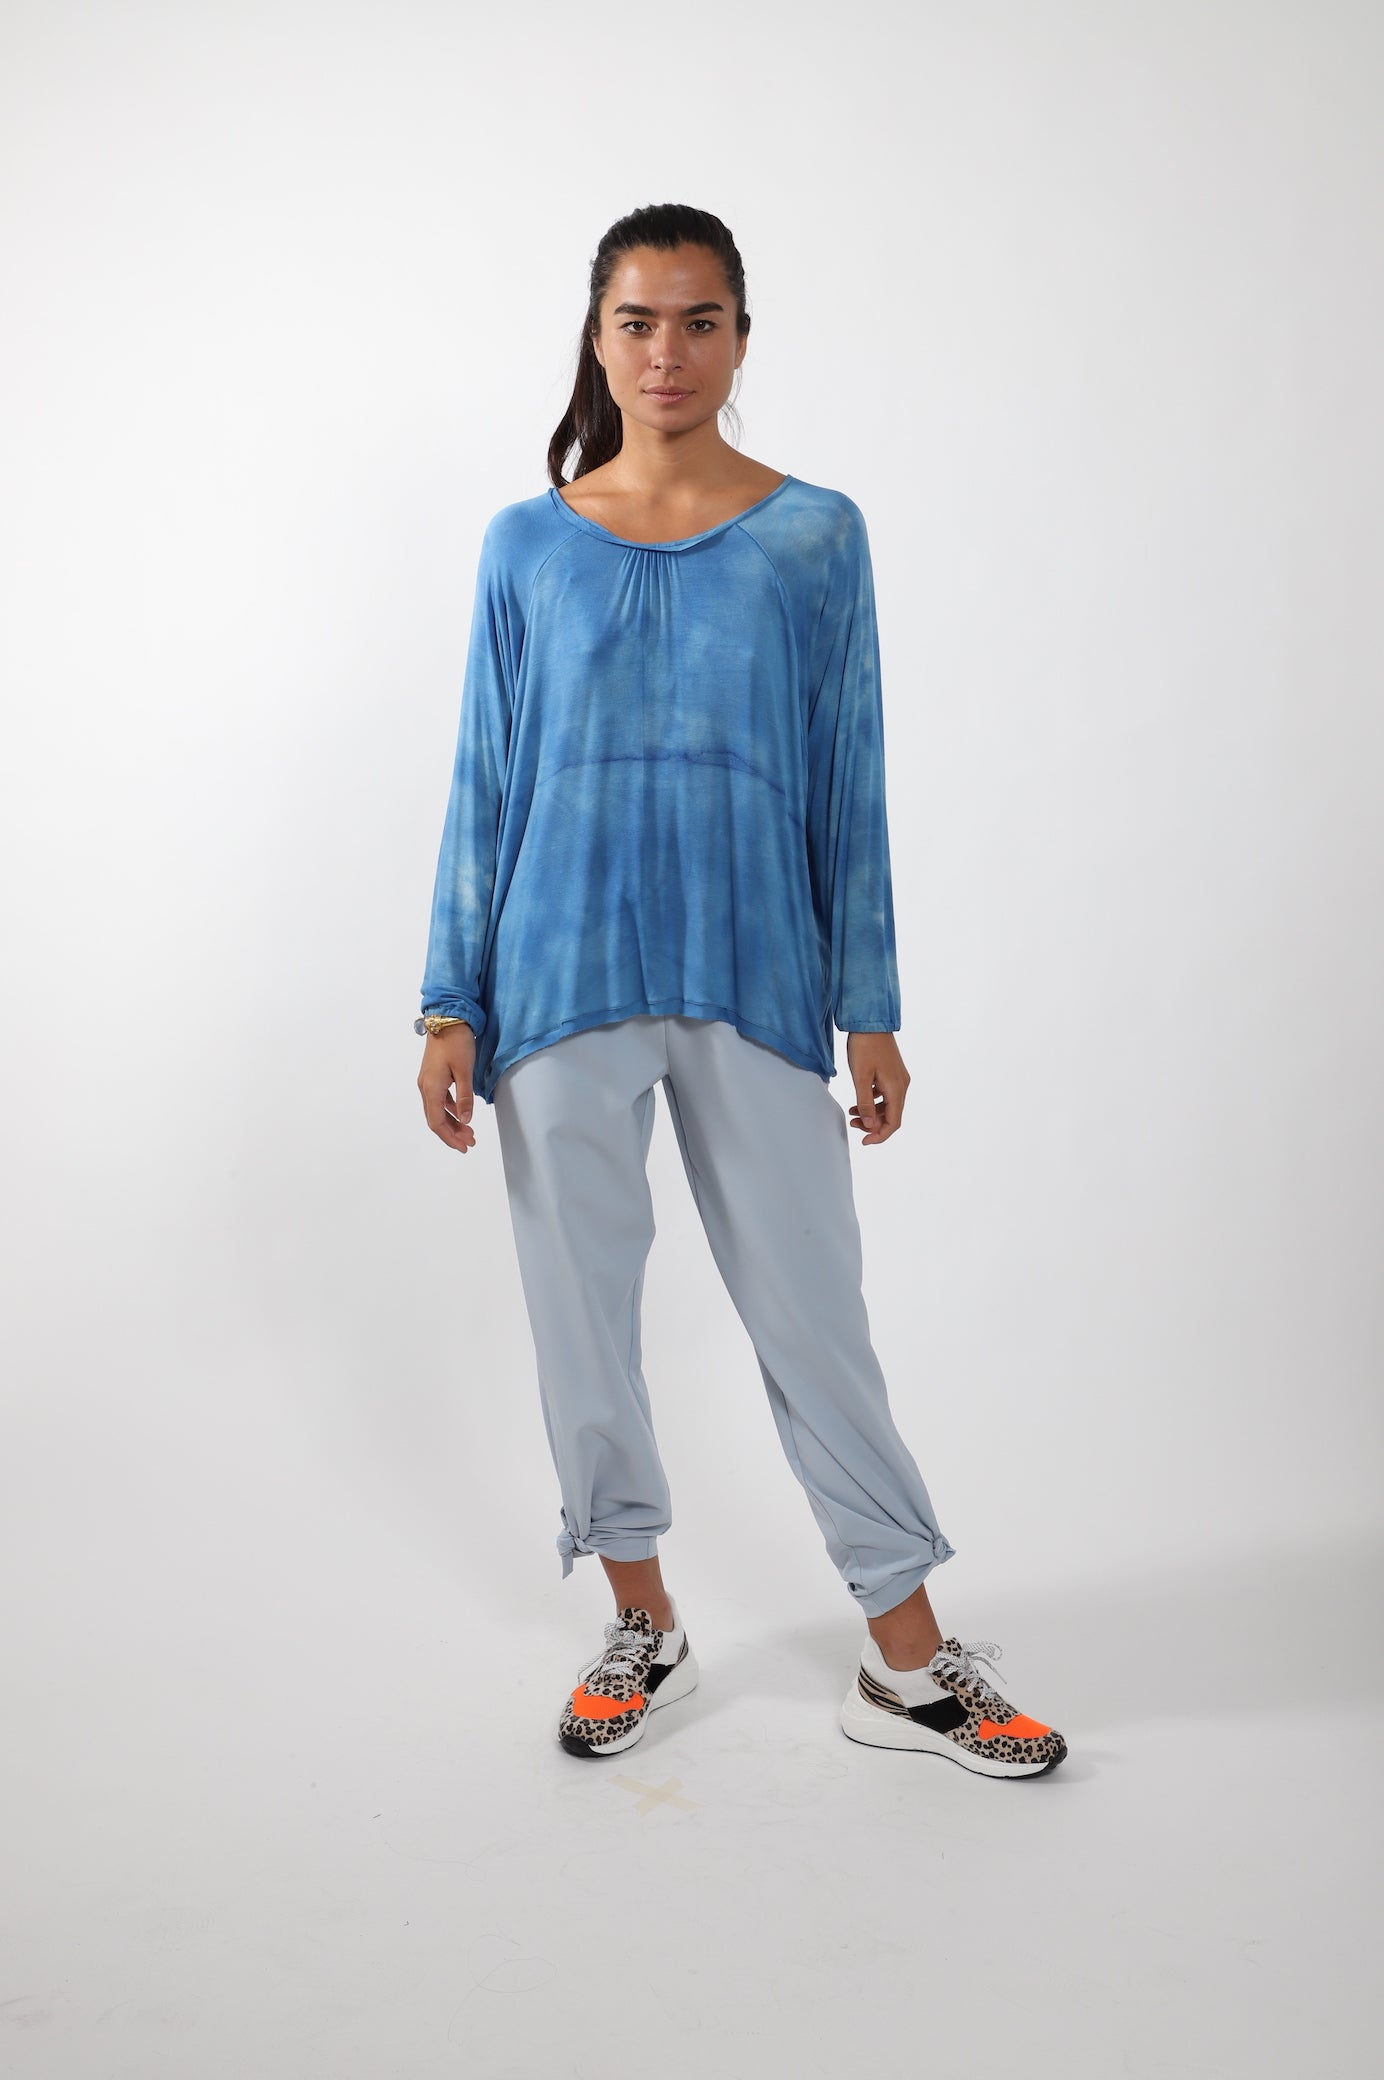 Raglan Long Sleeve Tee · Blue Tie Dye Cotton